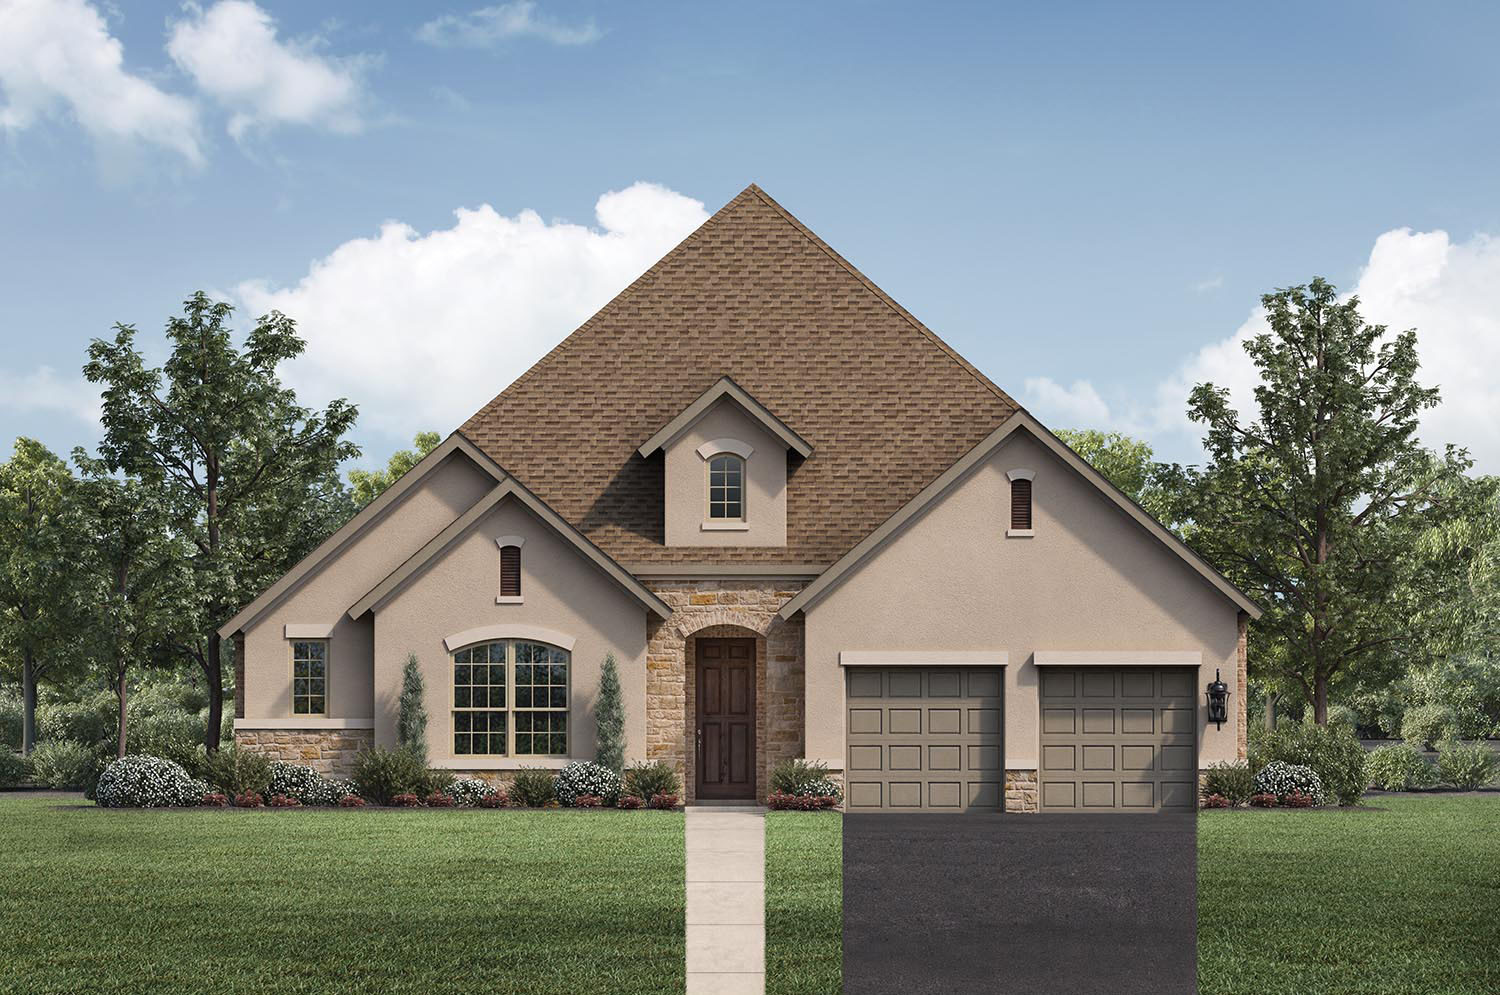 Toll Brothers is launching a line of lower-priced homes geared exclusively toward young buyers.